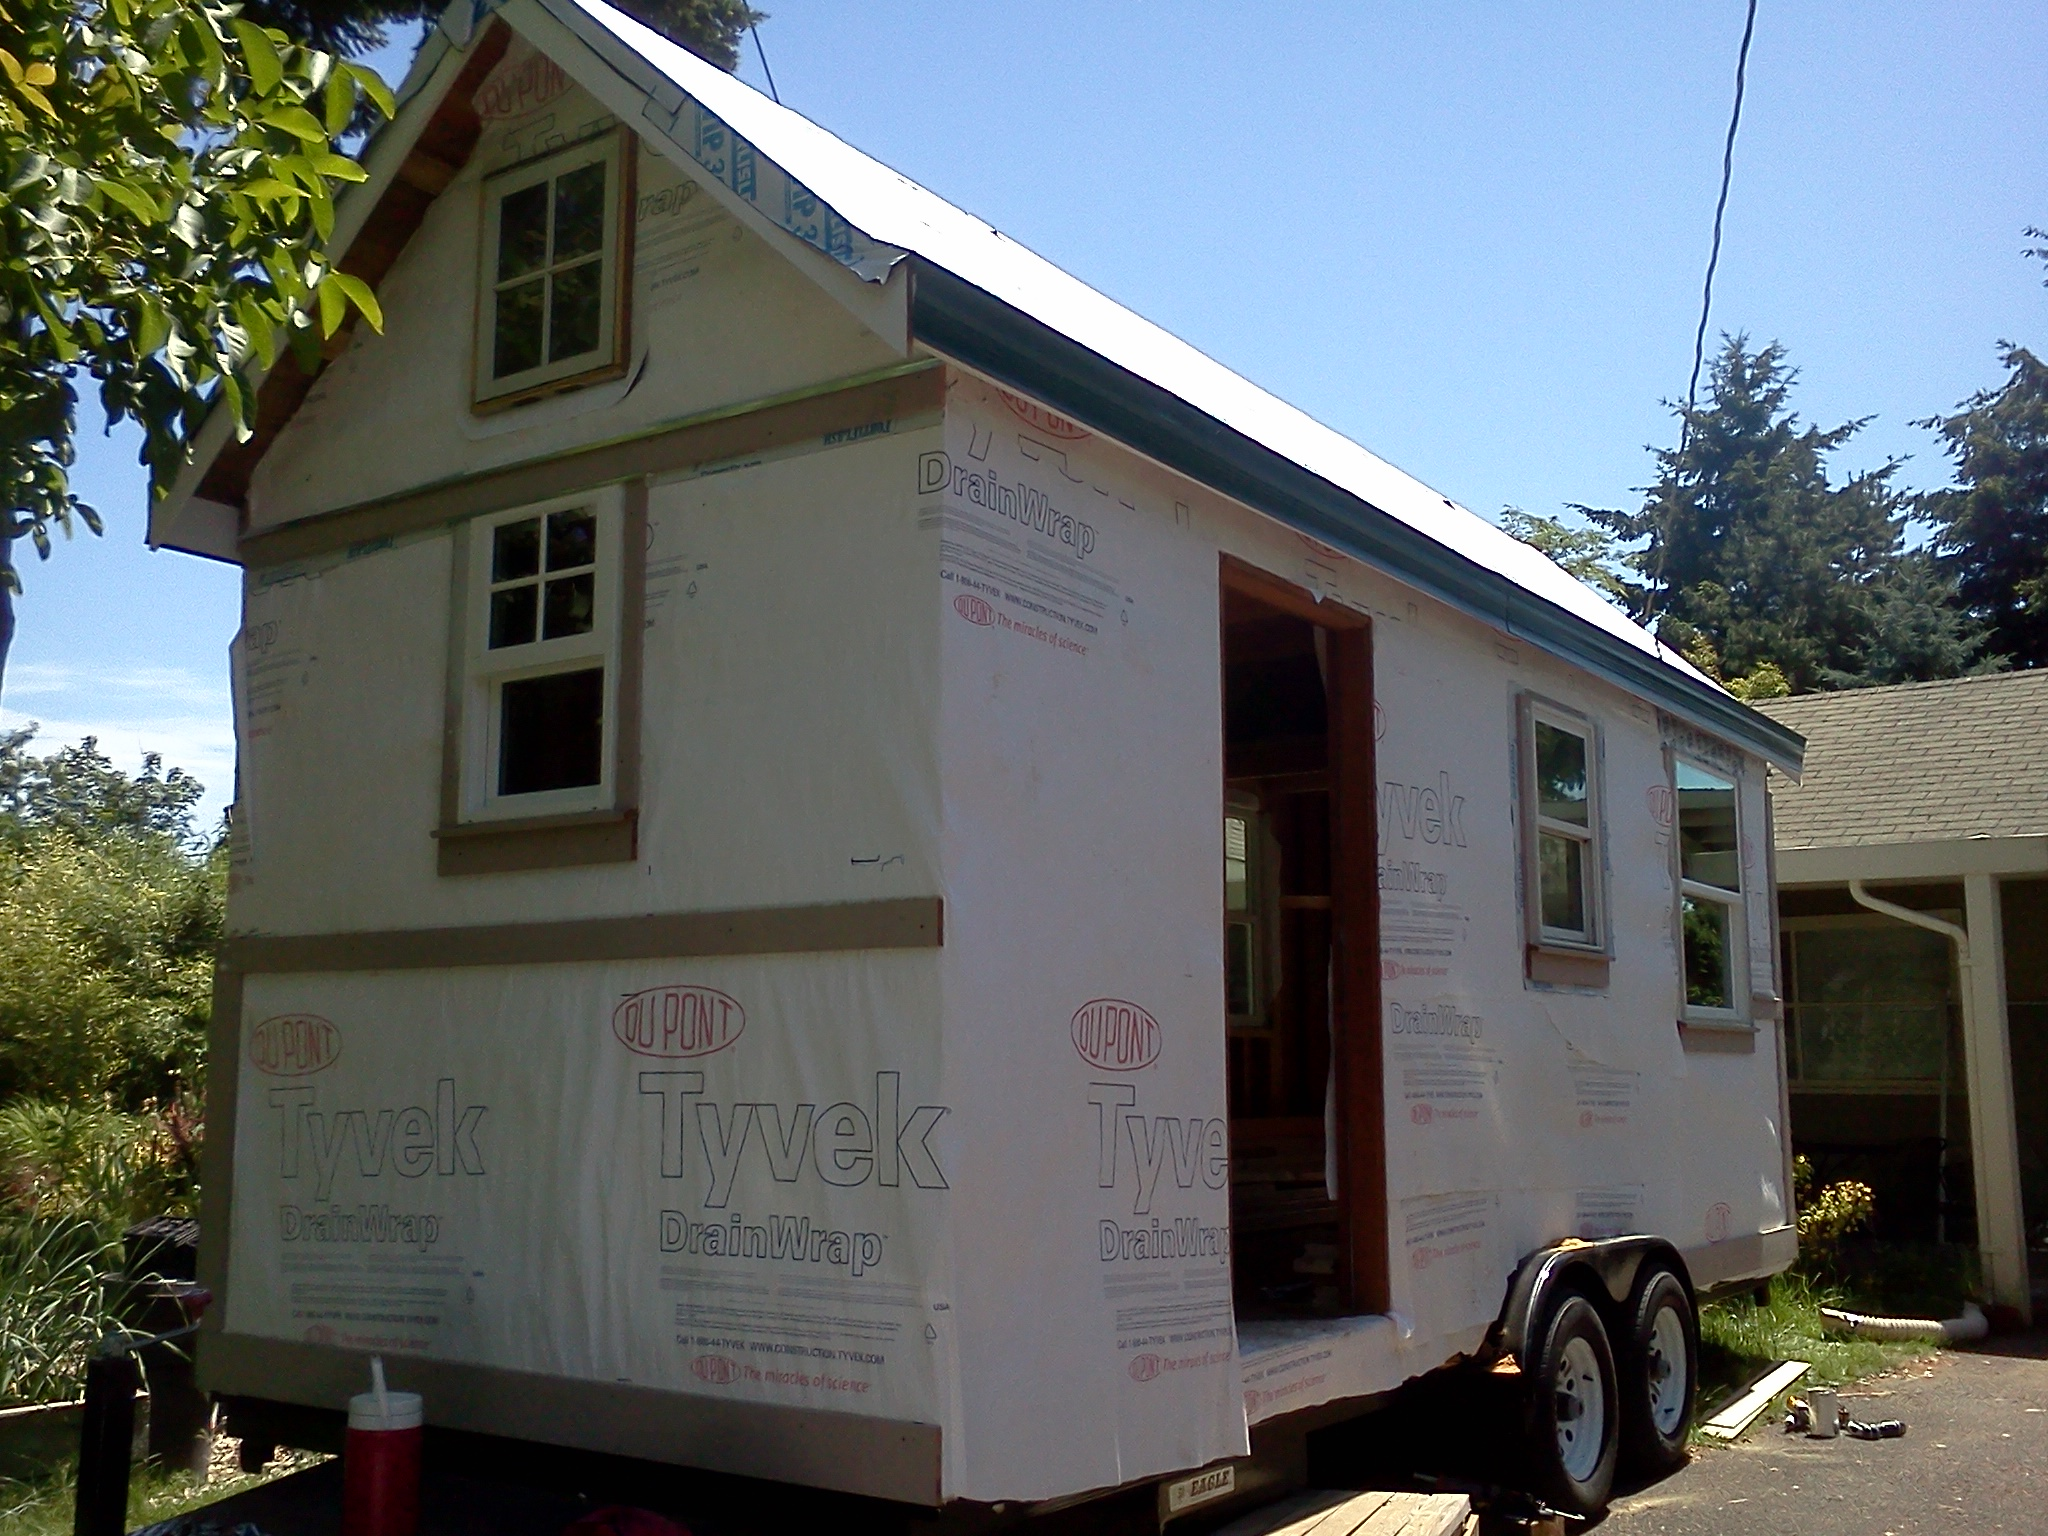 I'm going to help finish this tiny house!